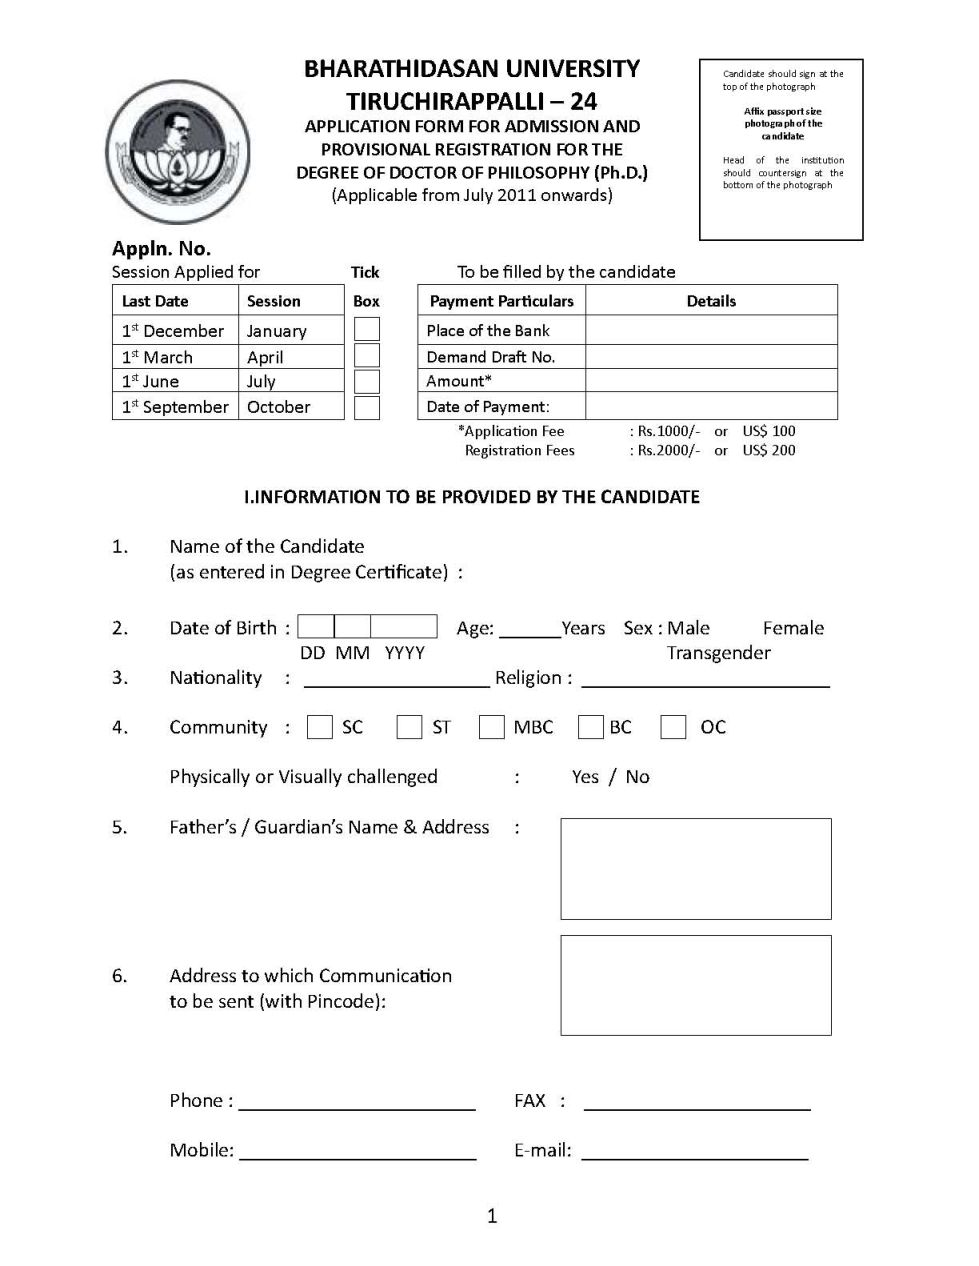 phd thesis submission form bharathidasan university